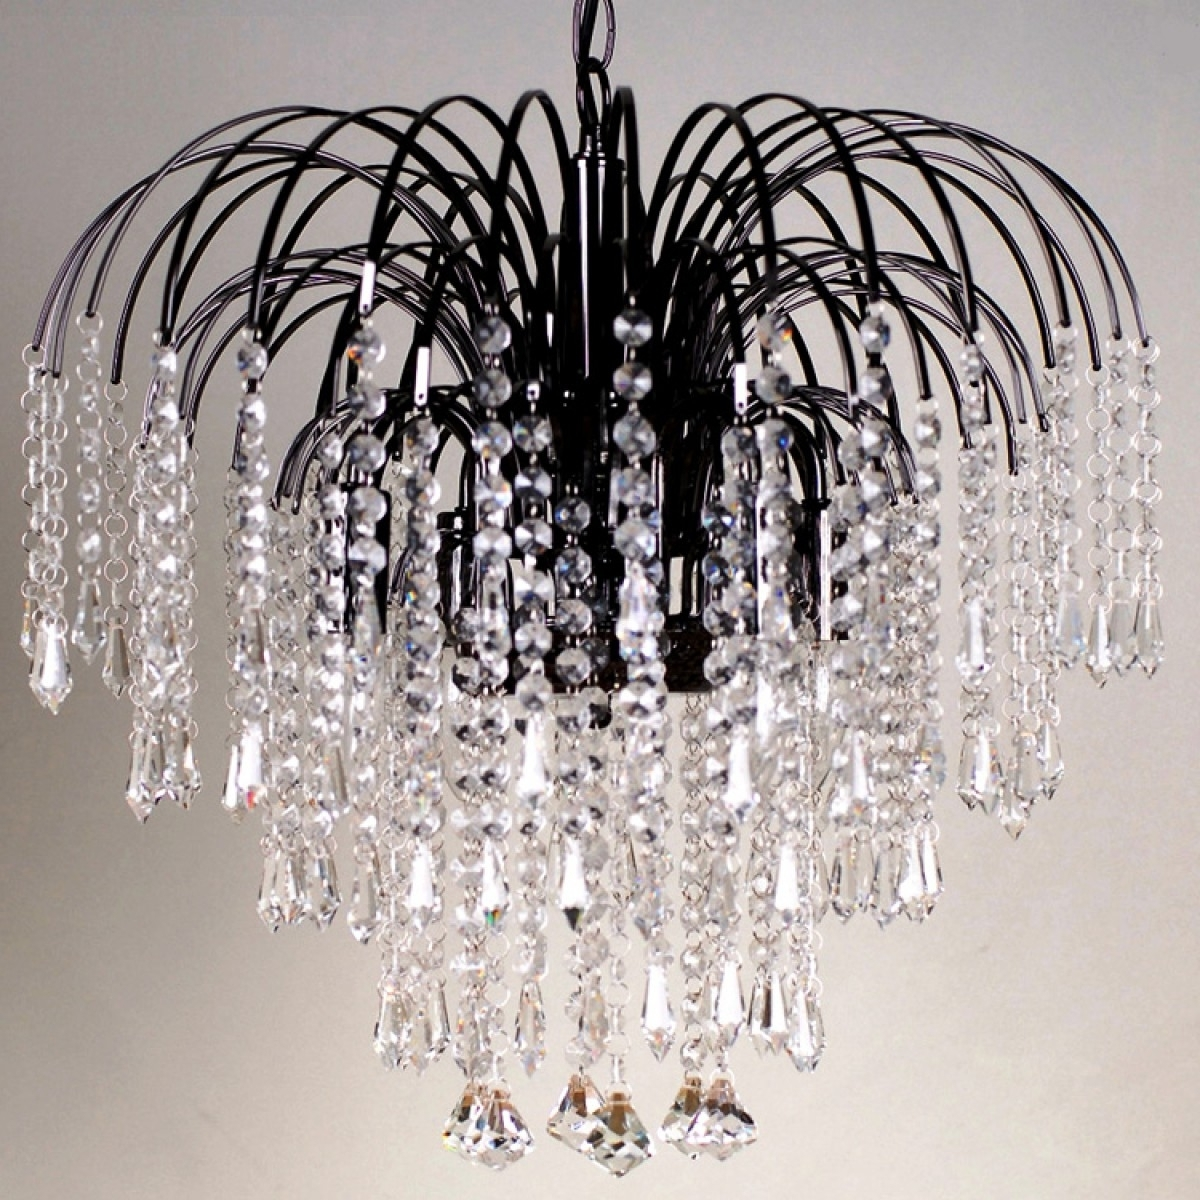 Waterfall Crystal Chandelier Pertaining To Popular Four Light Black Crystal Chandelier (View 11 of 15)